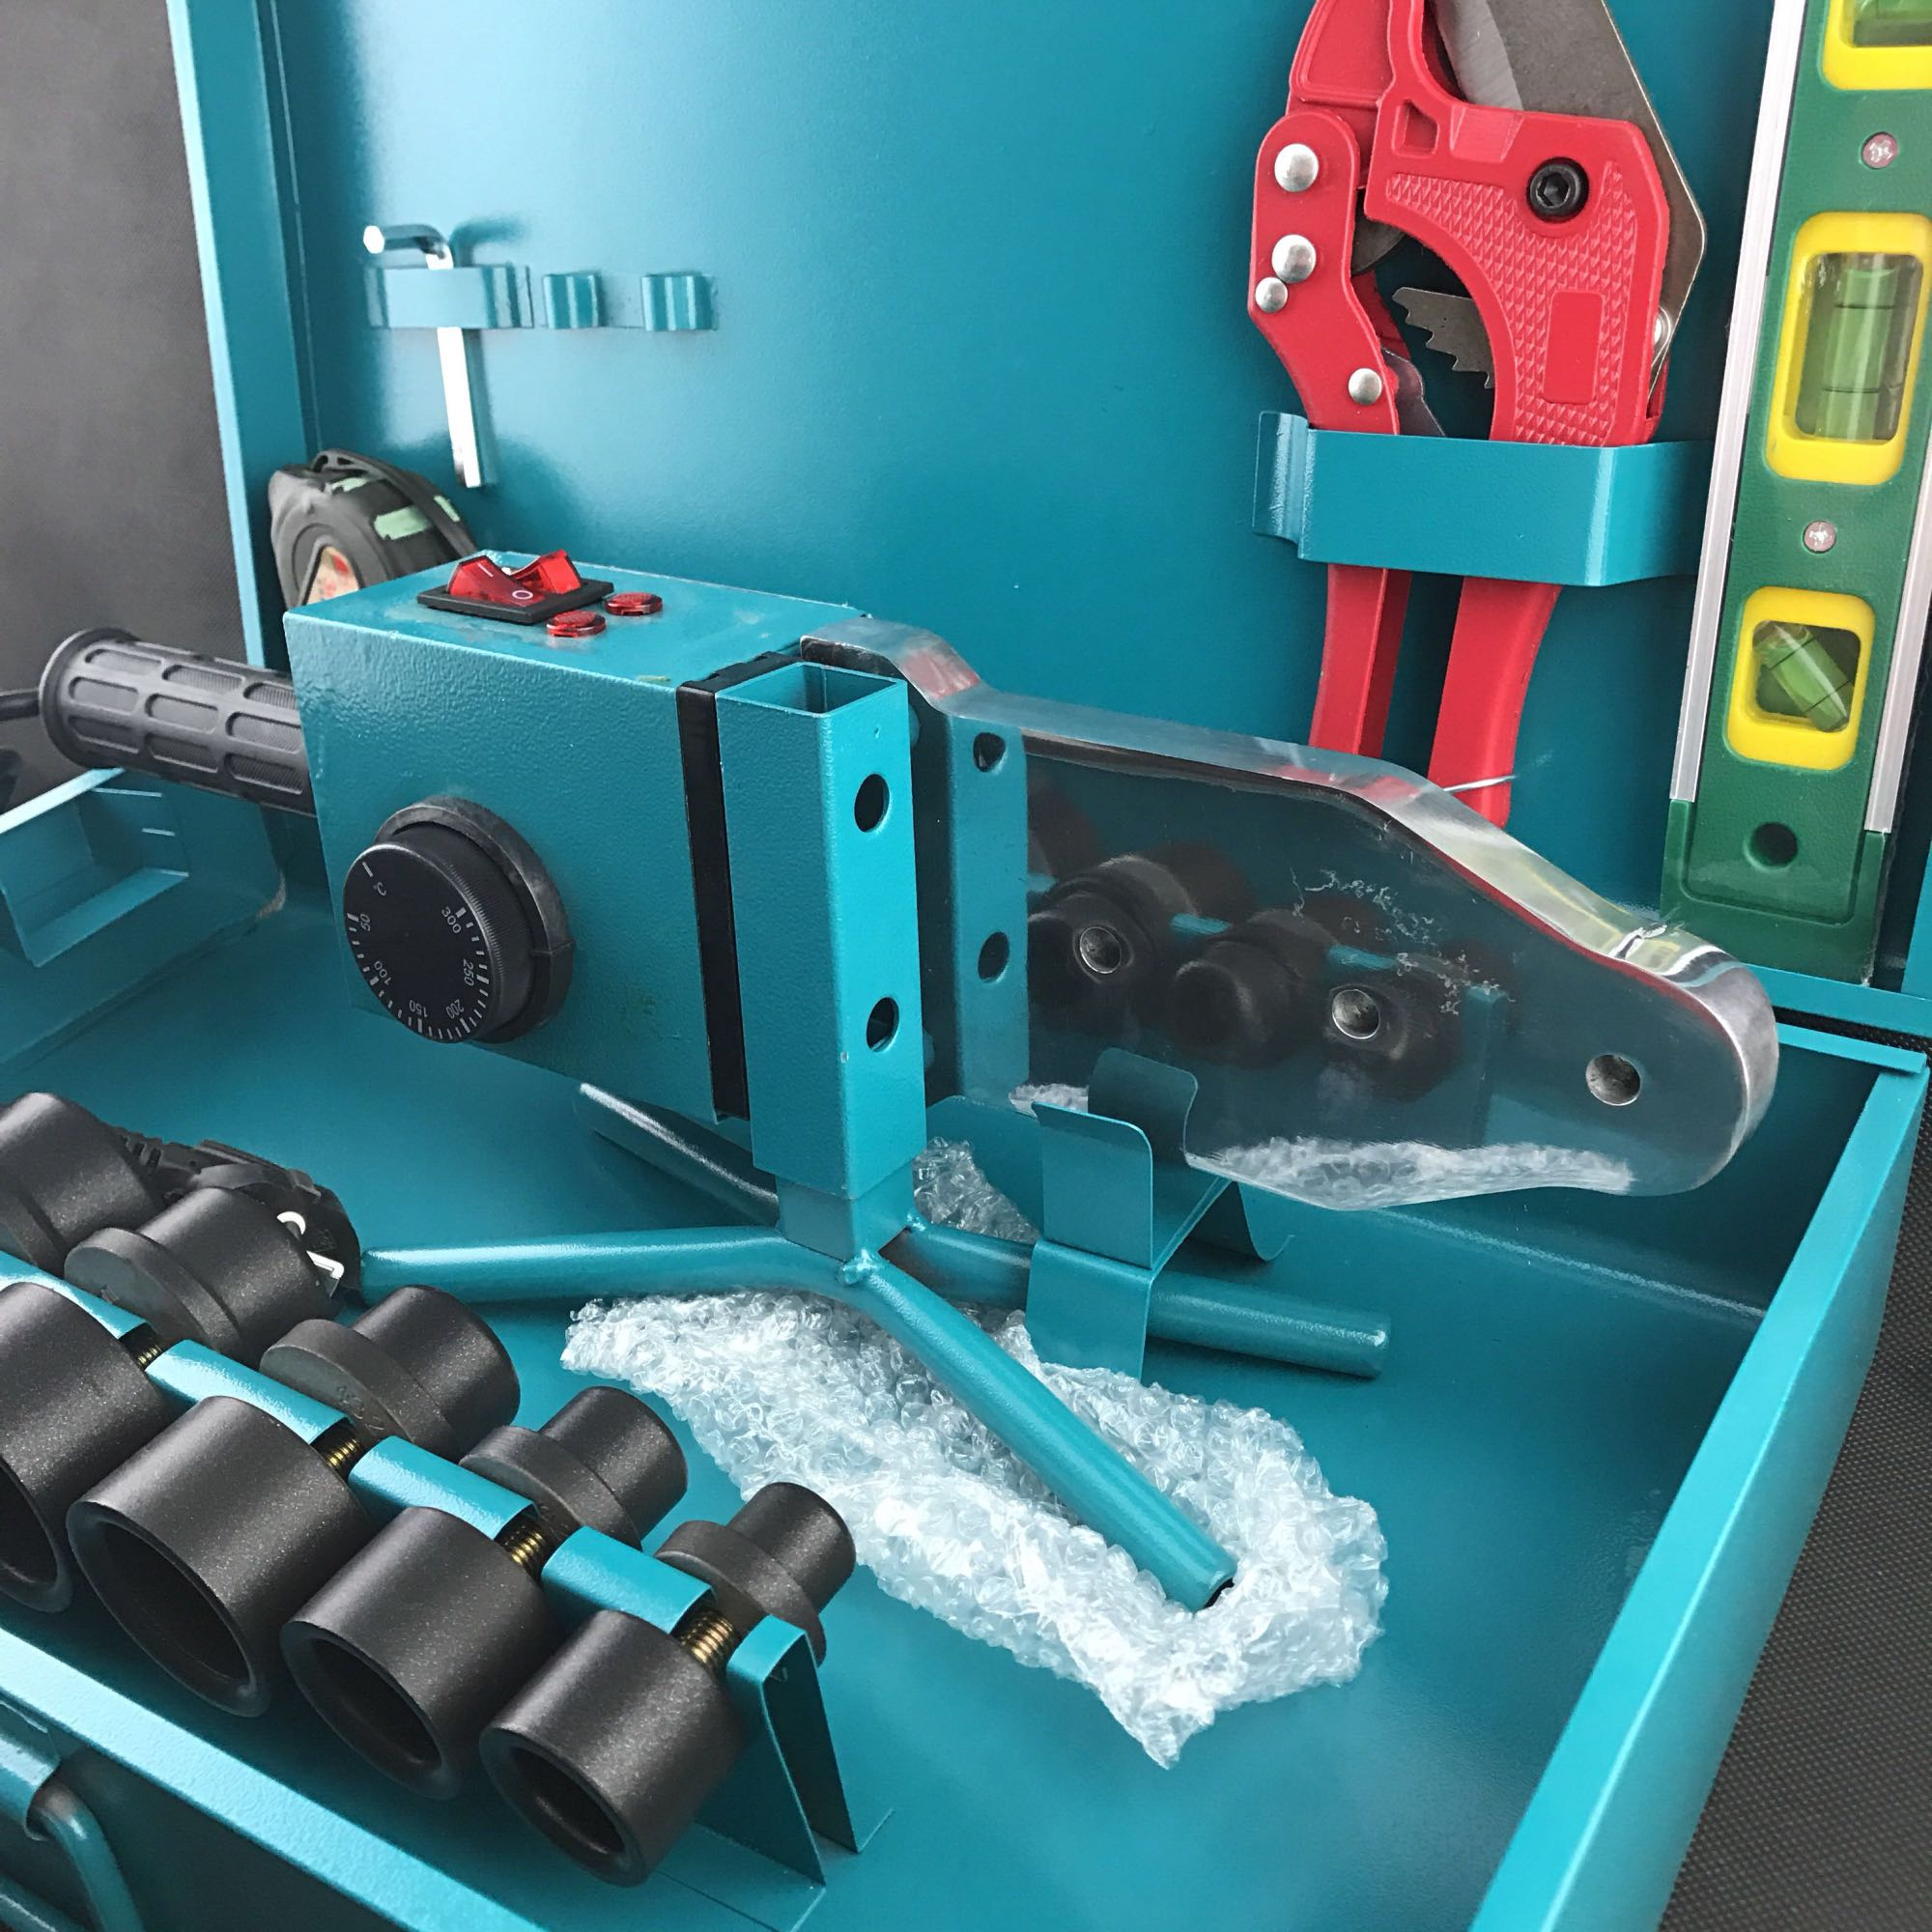 Grade A New PPR Welding Machine, Plastic Pipe Welding Machine Water Tube Welder AC 220V 1500W 20-63mm To Use